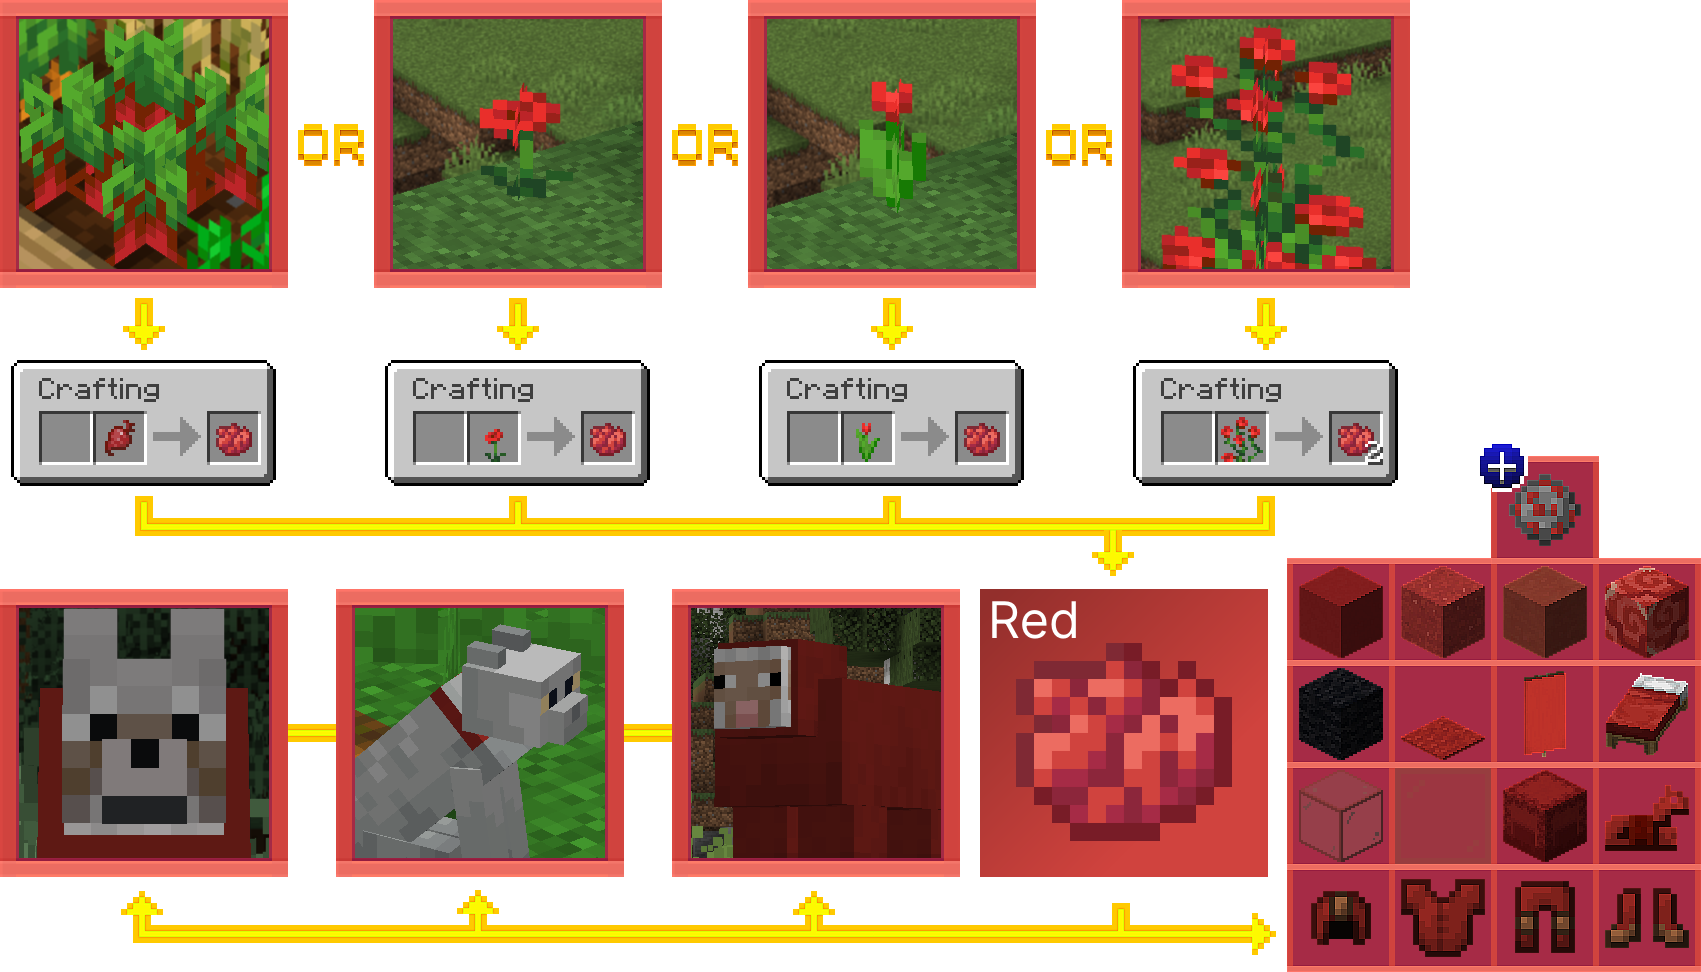 How to Get Red Dye in Minecraft